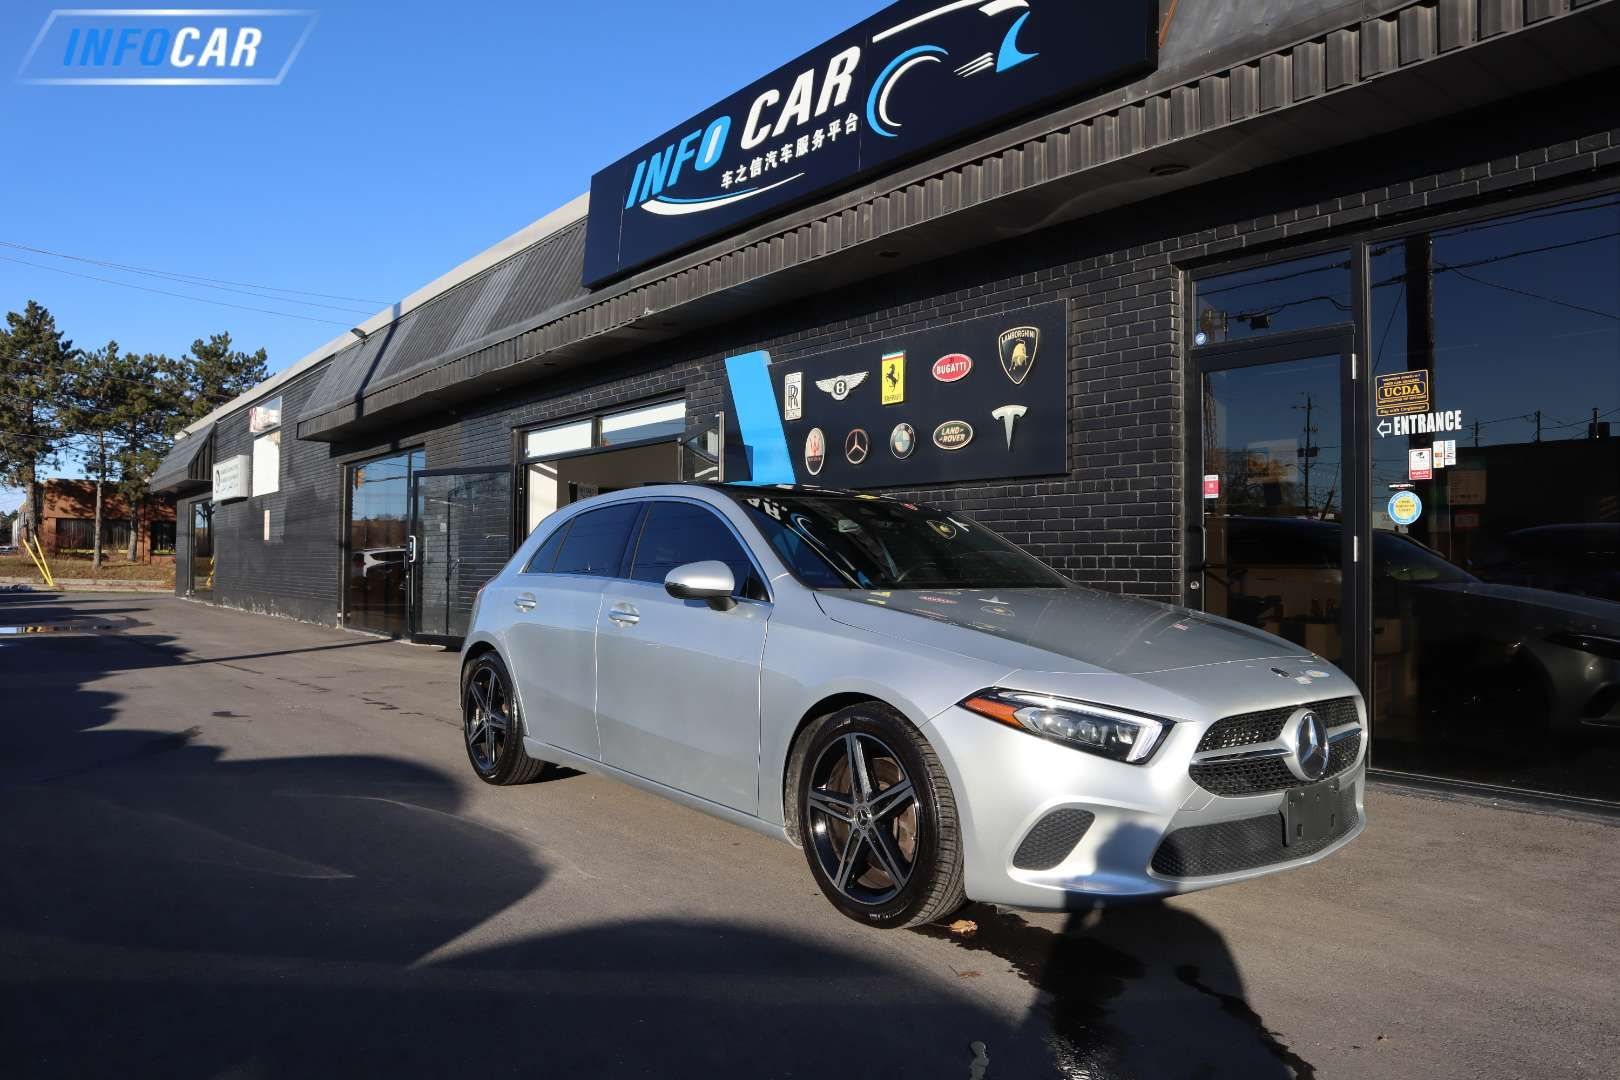 2019 Mercedes-Benz A-Class A250 HATCH BACK - INFOCAR - Toronto's Most Comprehensive New and Used Auto Trading Platform